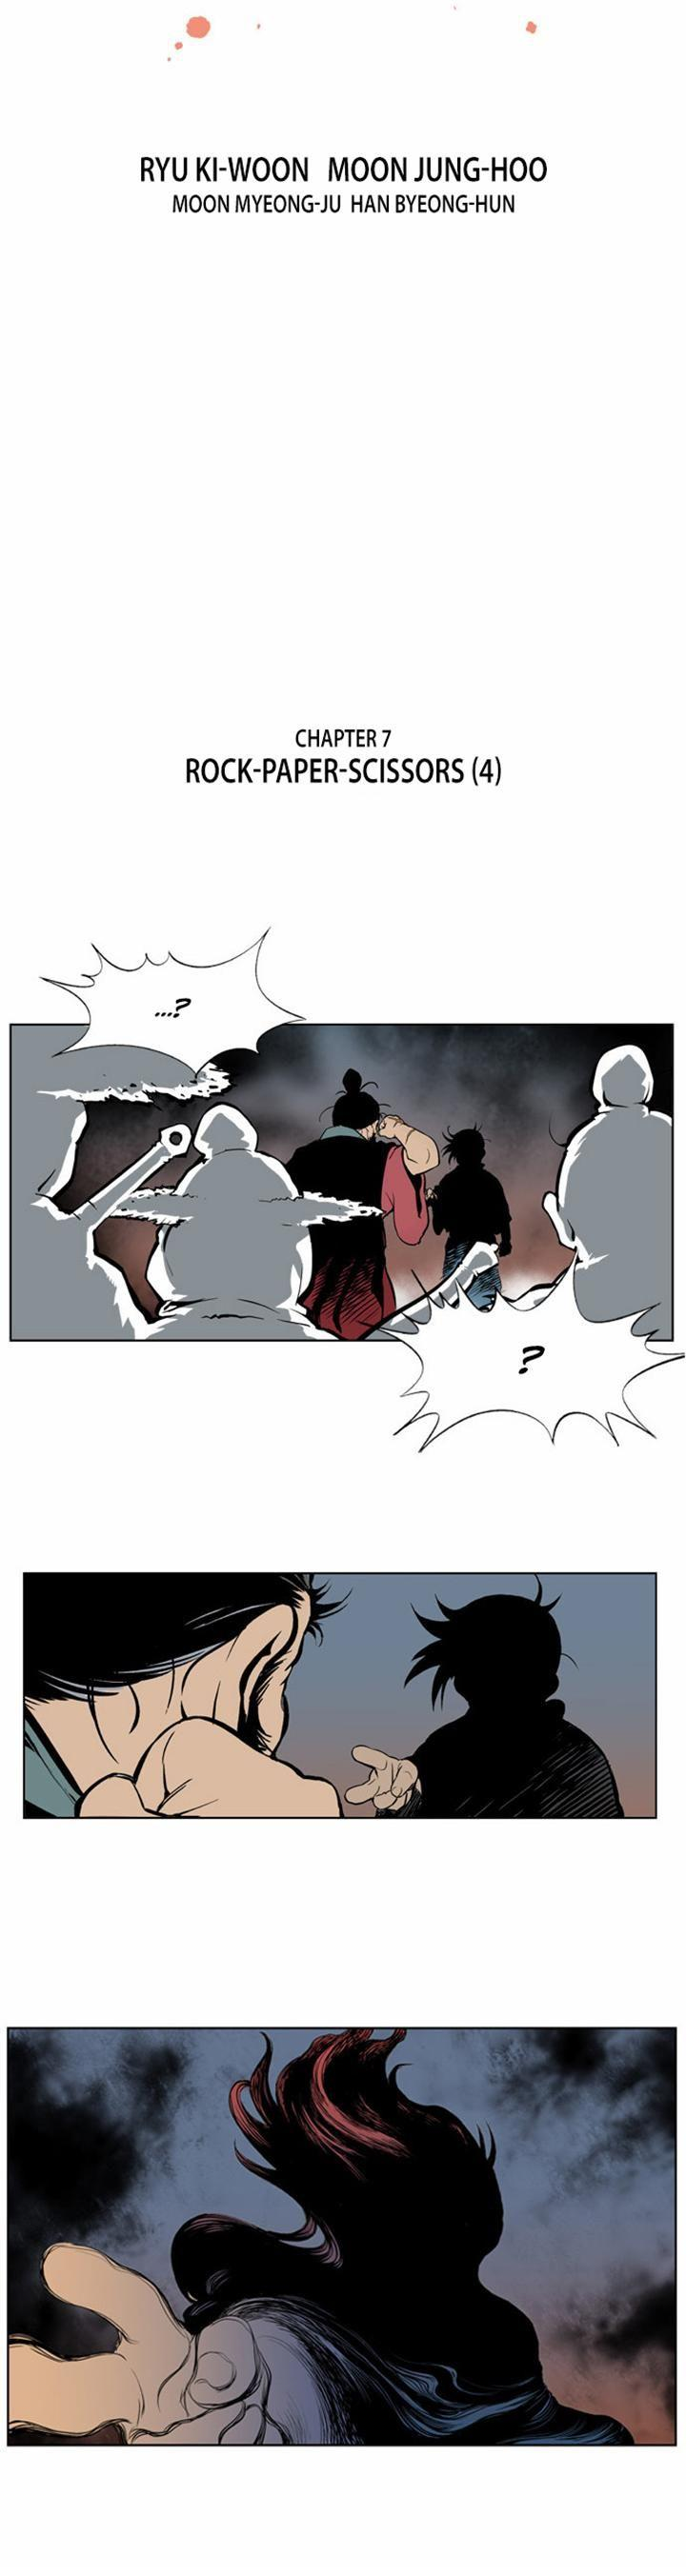 Gosu (The Master) - Chapter 8